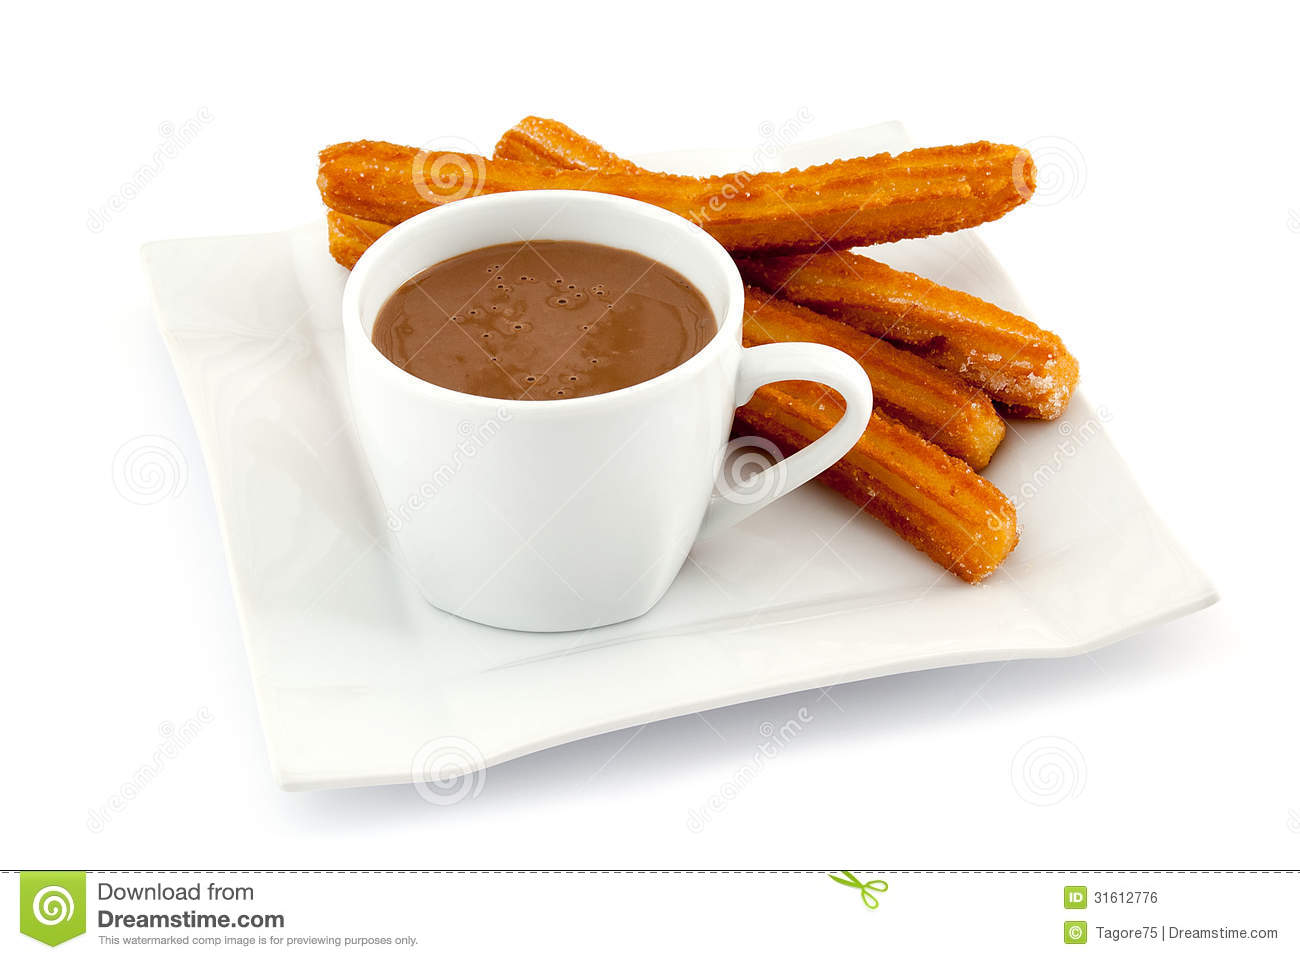 Churros With Hot Chocolate Royalty Free Stock Image - Image: 31612776